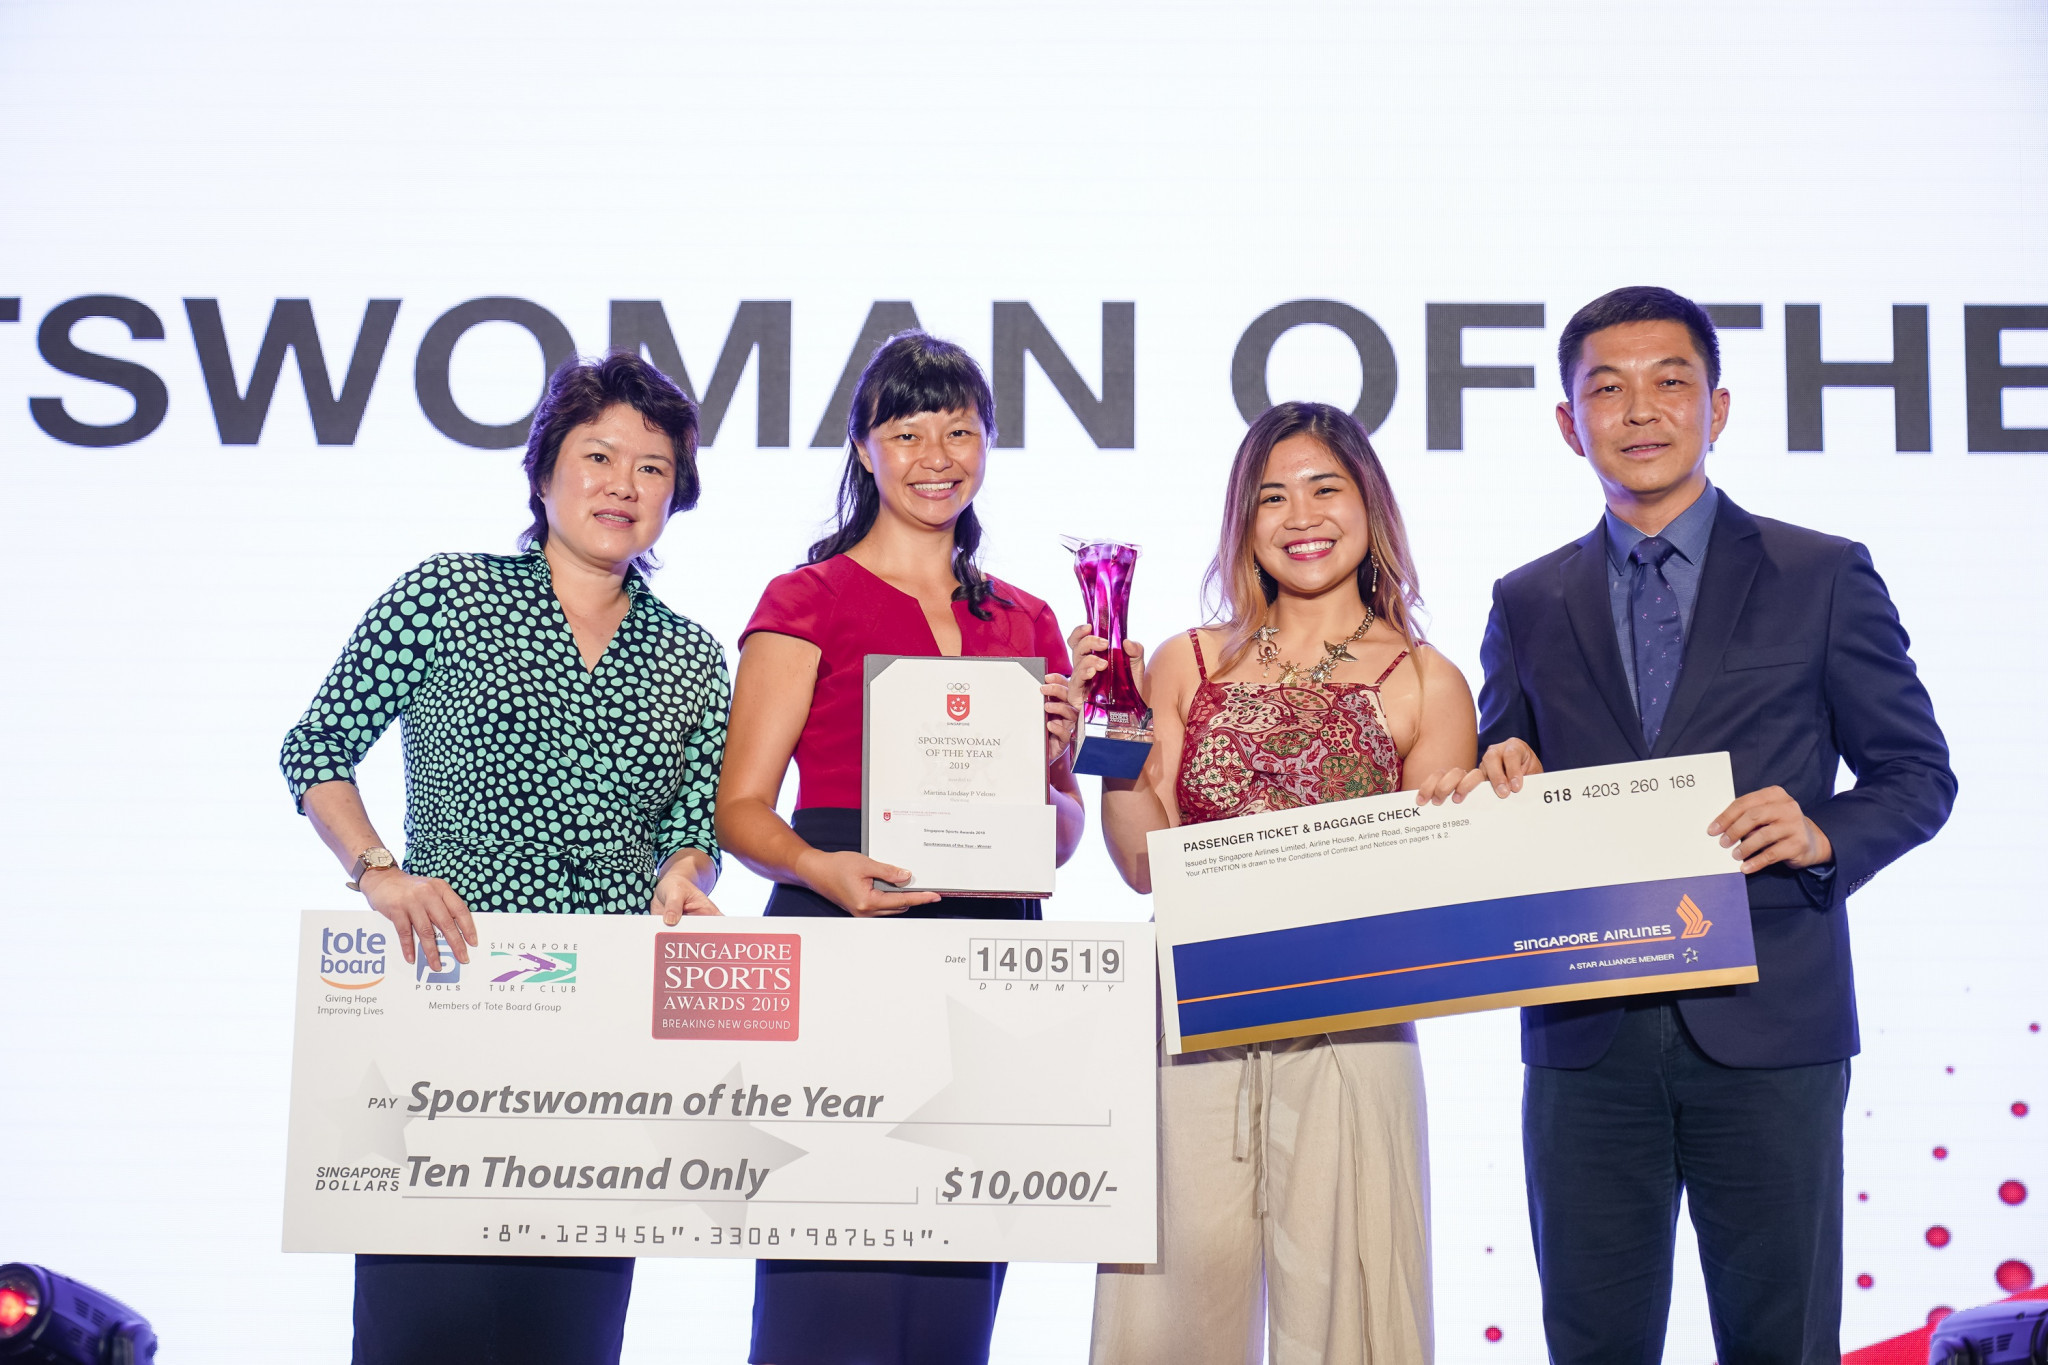 Martina Veloso is a first-time winner of the sportswoman of the year prize ©SNOC